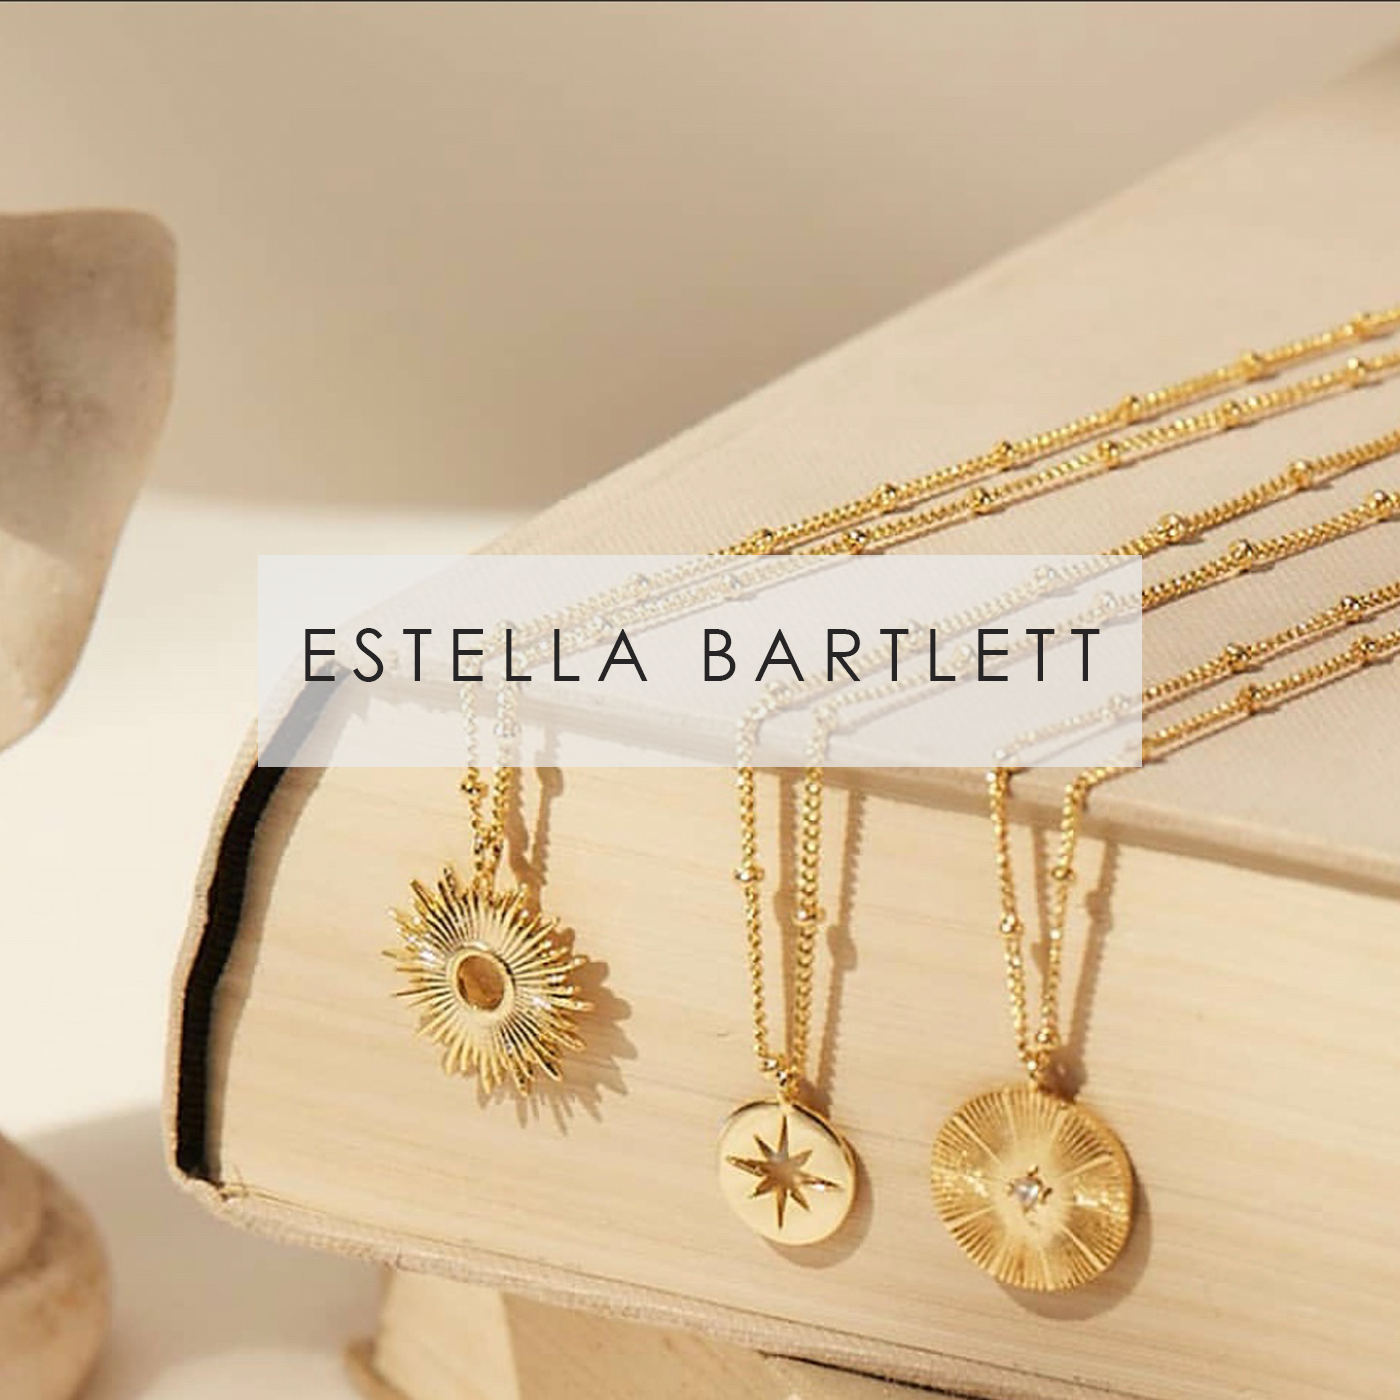 Estella Bartlett Nottingham Jewellery Stockist